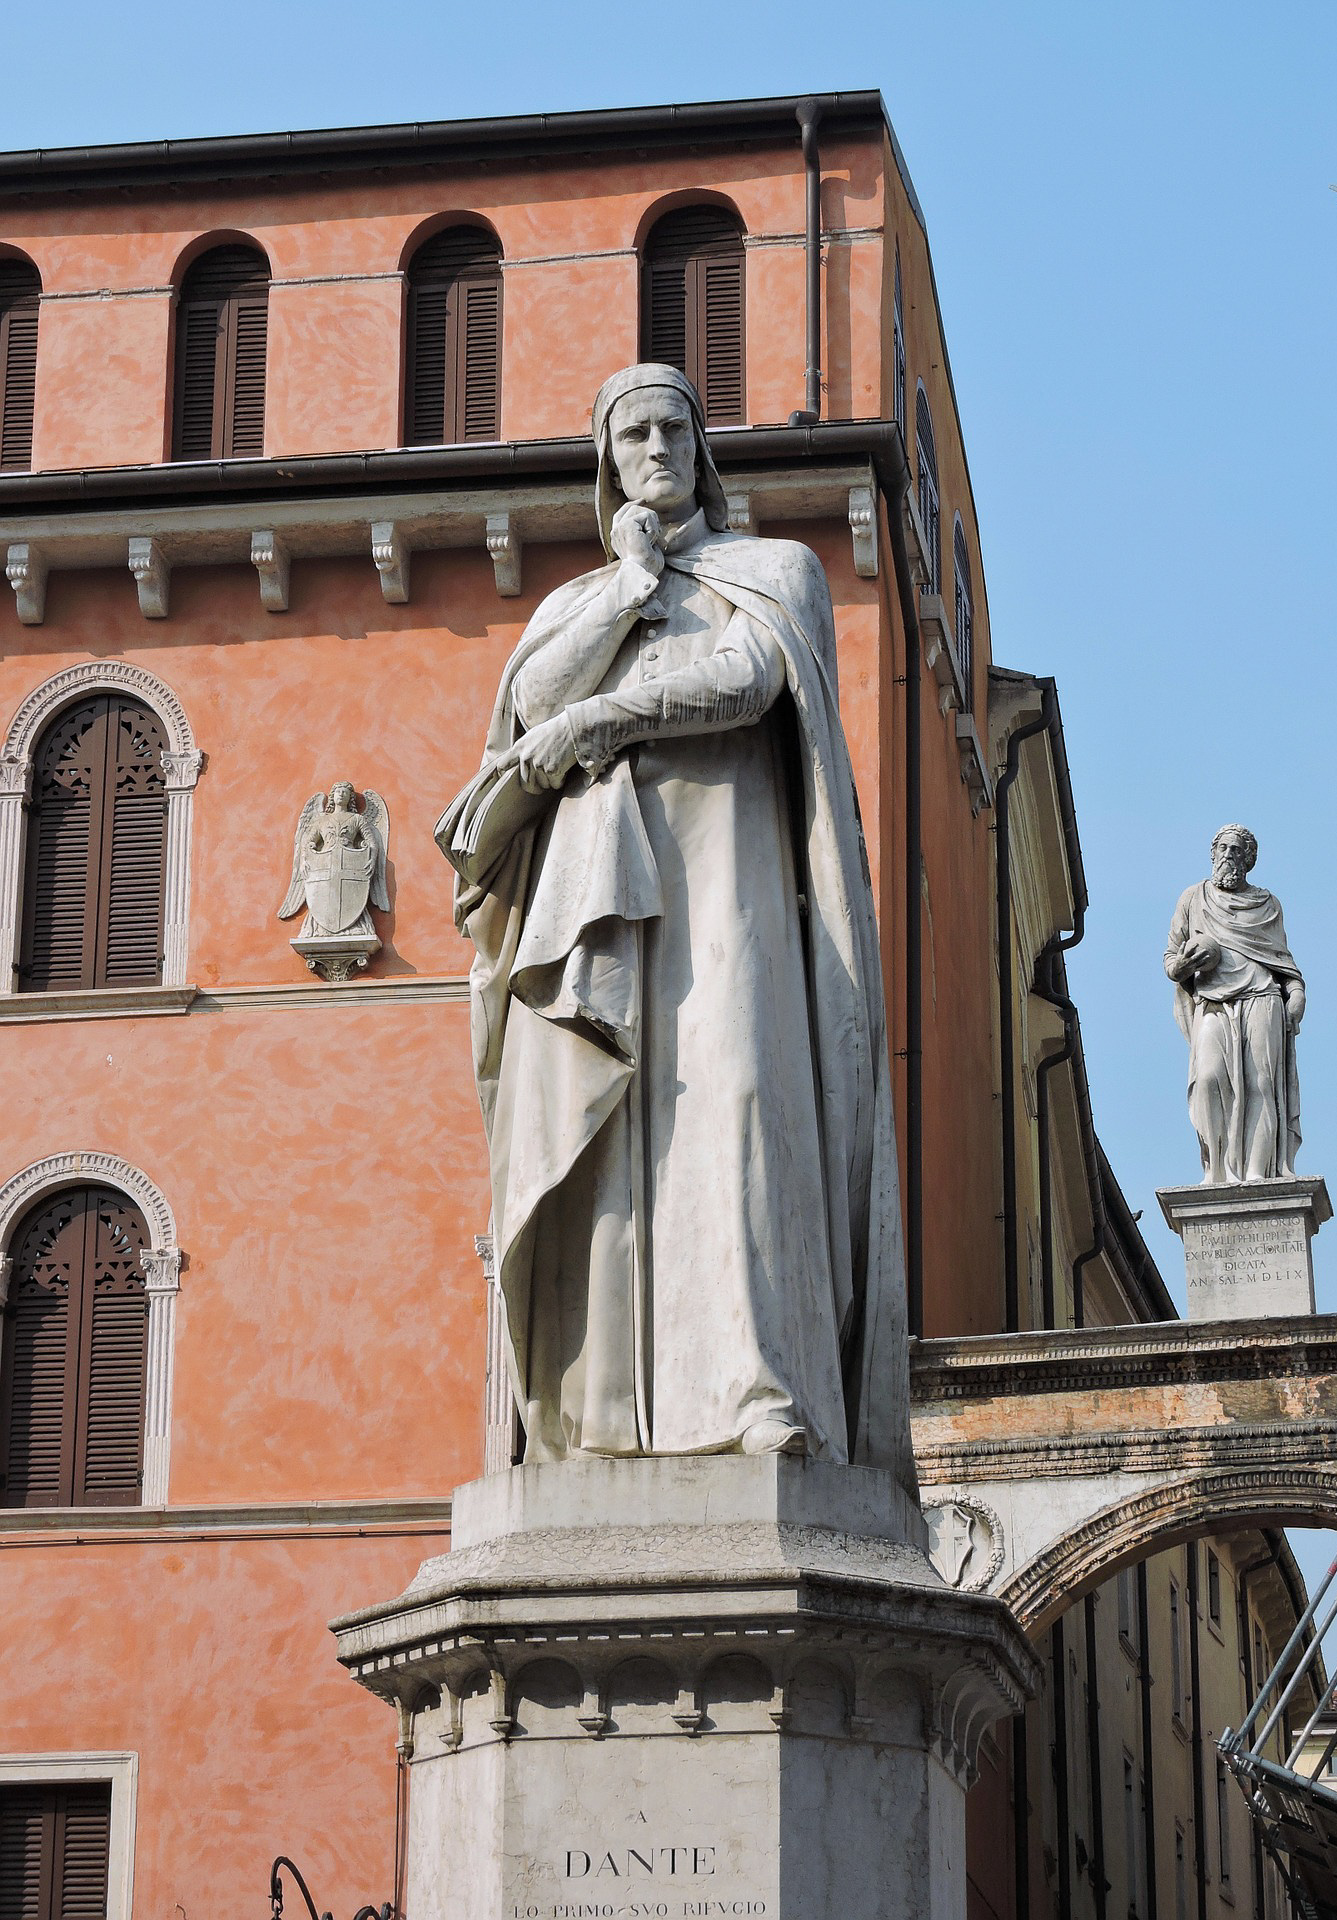 The statue of Dante in Piazza dei Signori in Verona